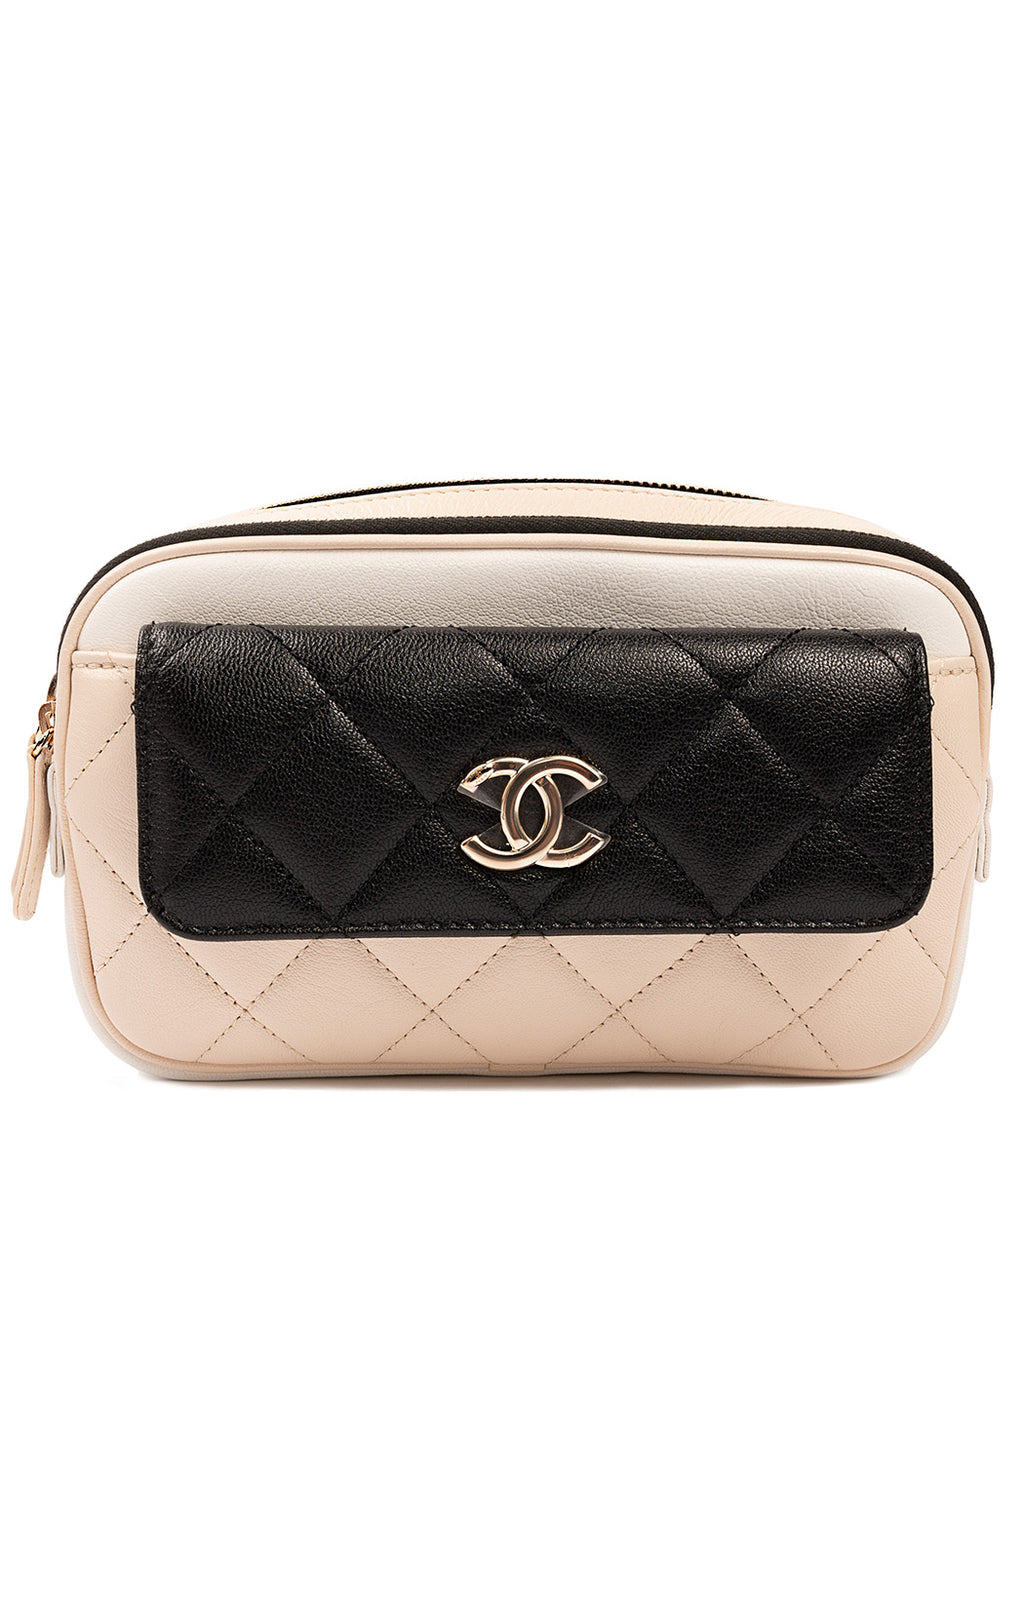 "CHANEL with tags Waist bag Size: 4.5"" H x 2.5"" W x 2.5"" D"